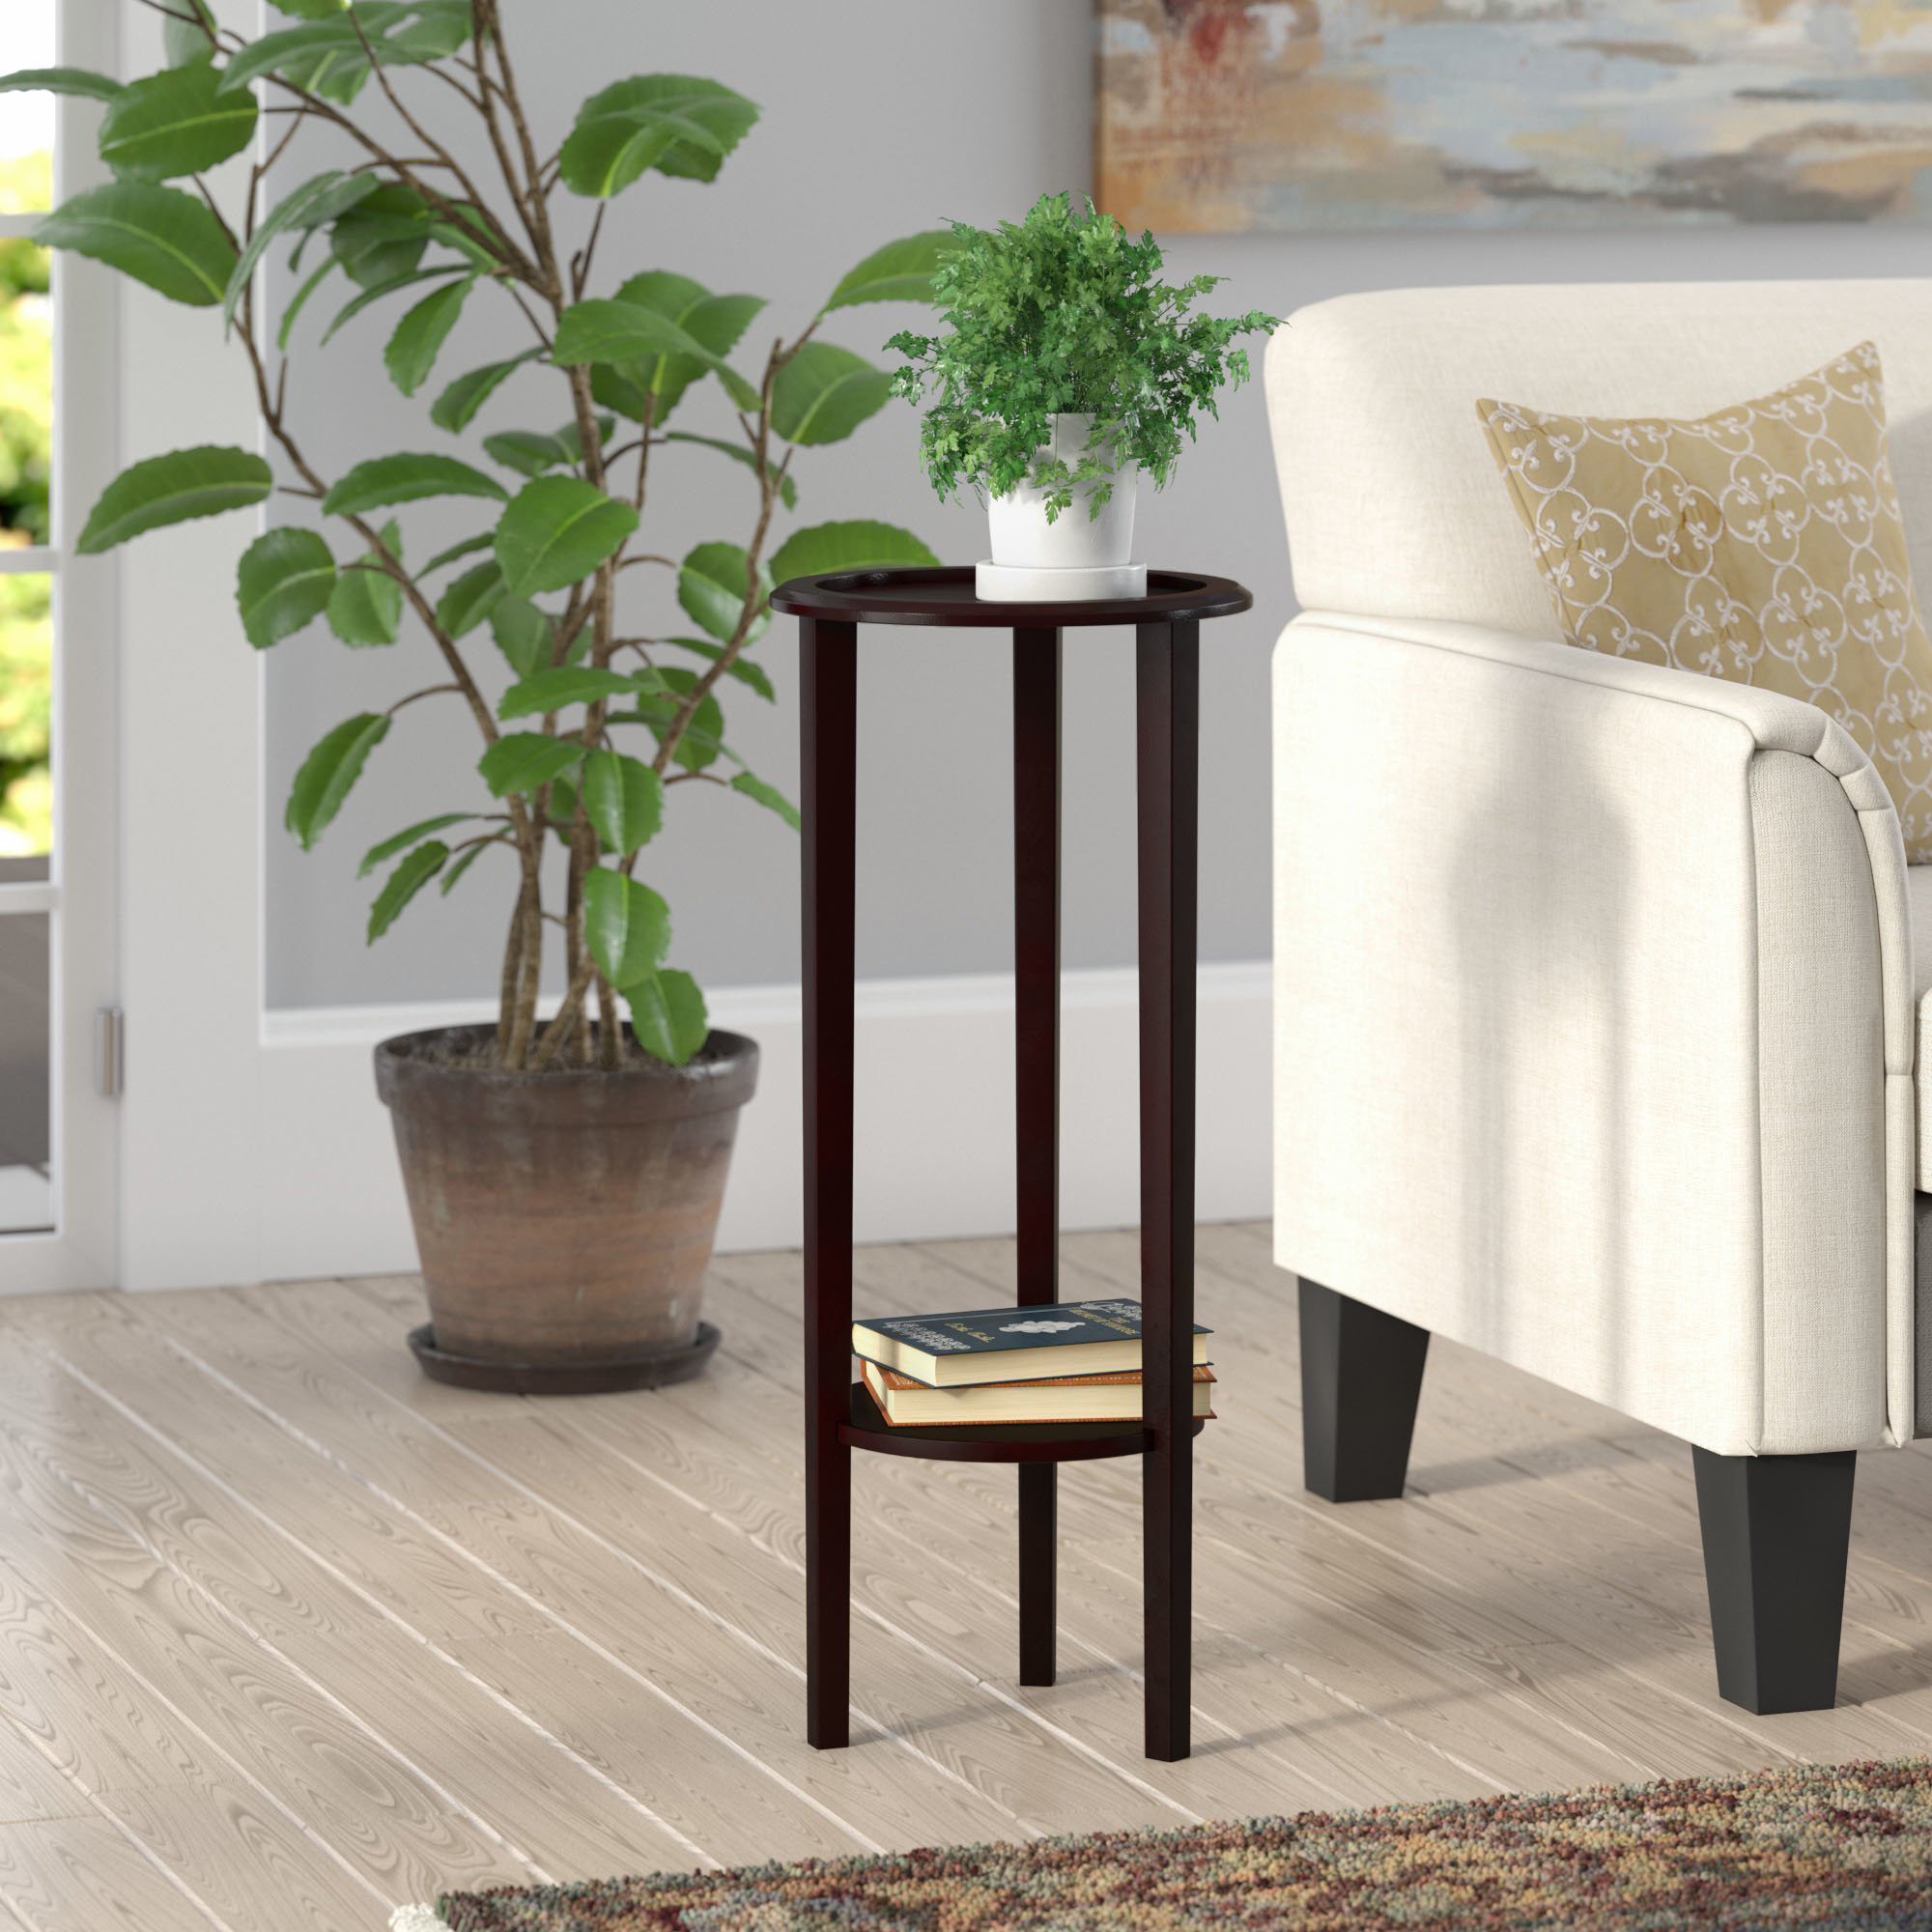 tiered accent table jonas multi end metal white round nesting tables marble tops tall thin lamps modern legs ashley furniture wesling coffee cherry oak wicker outdoor inch gray